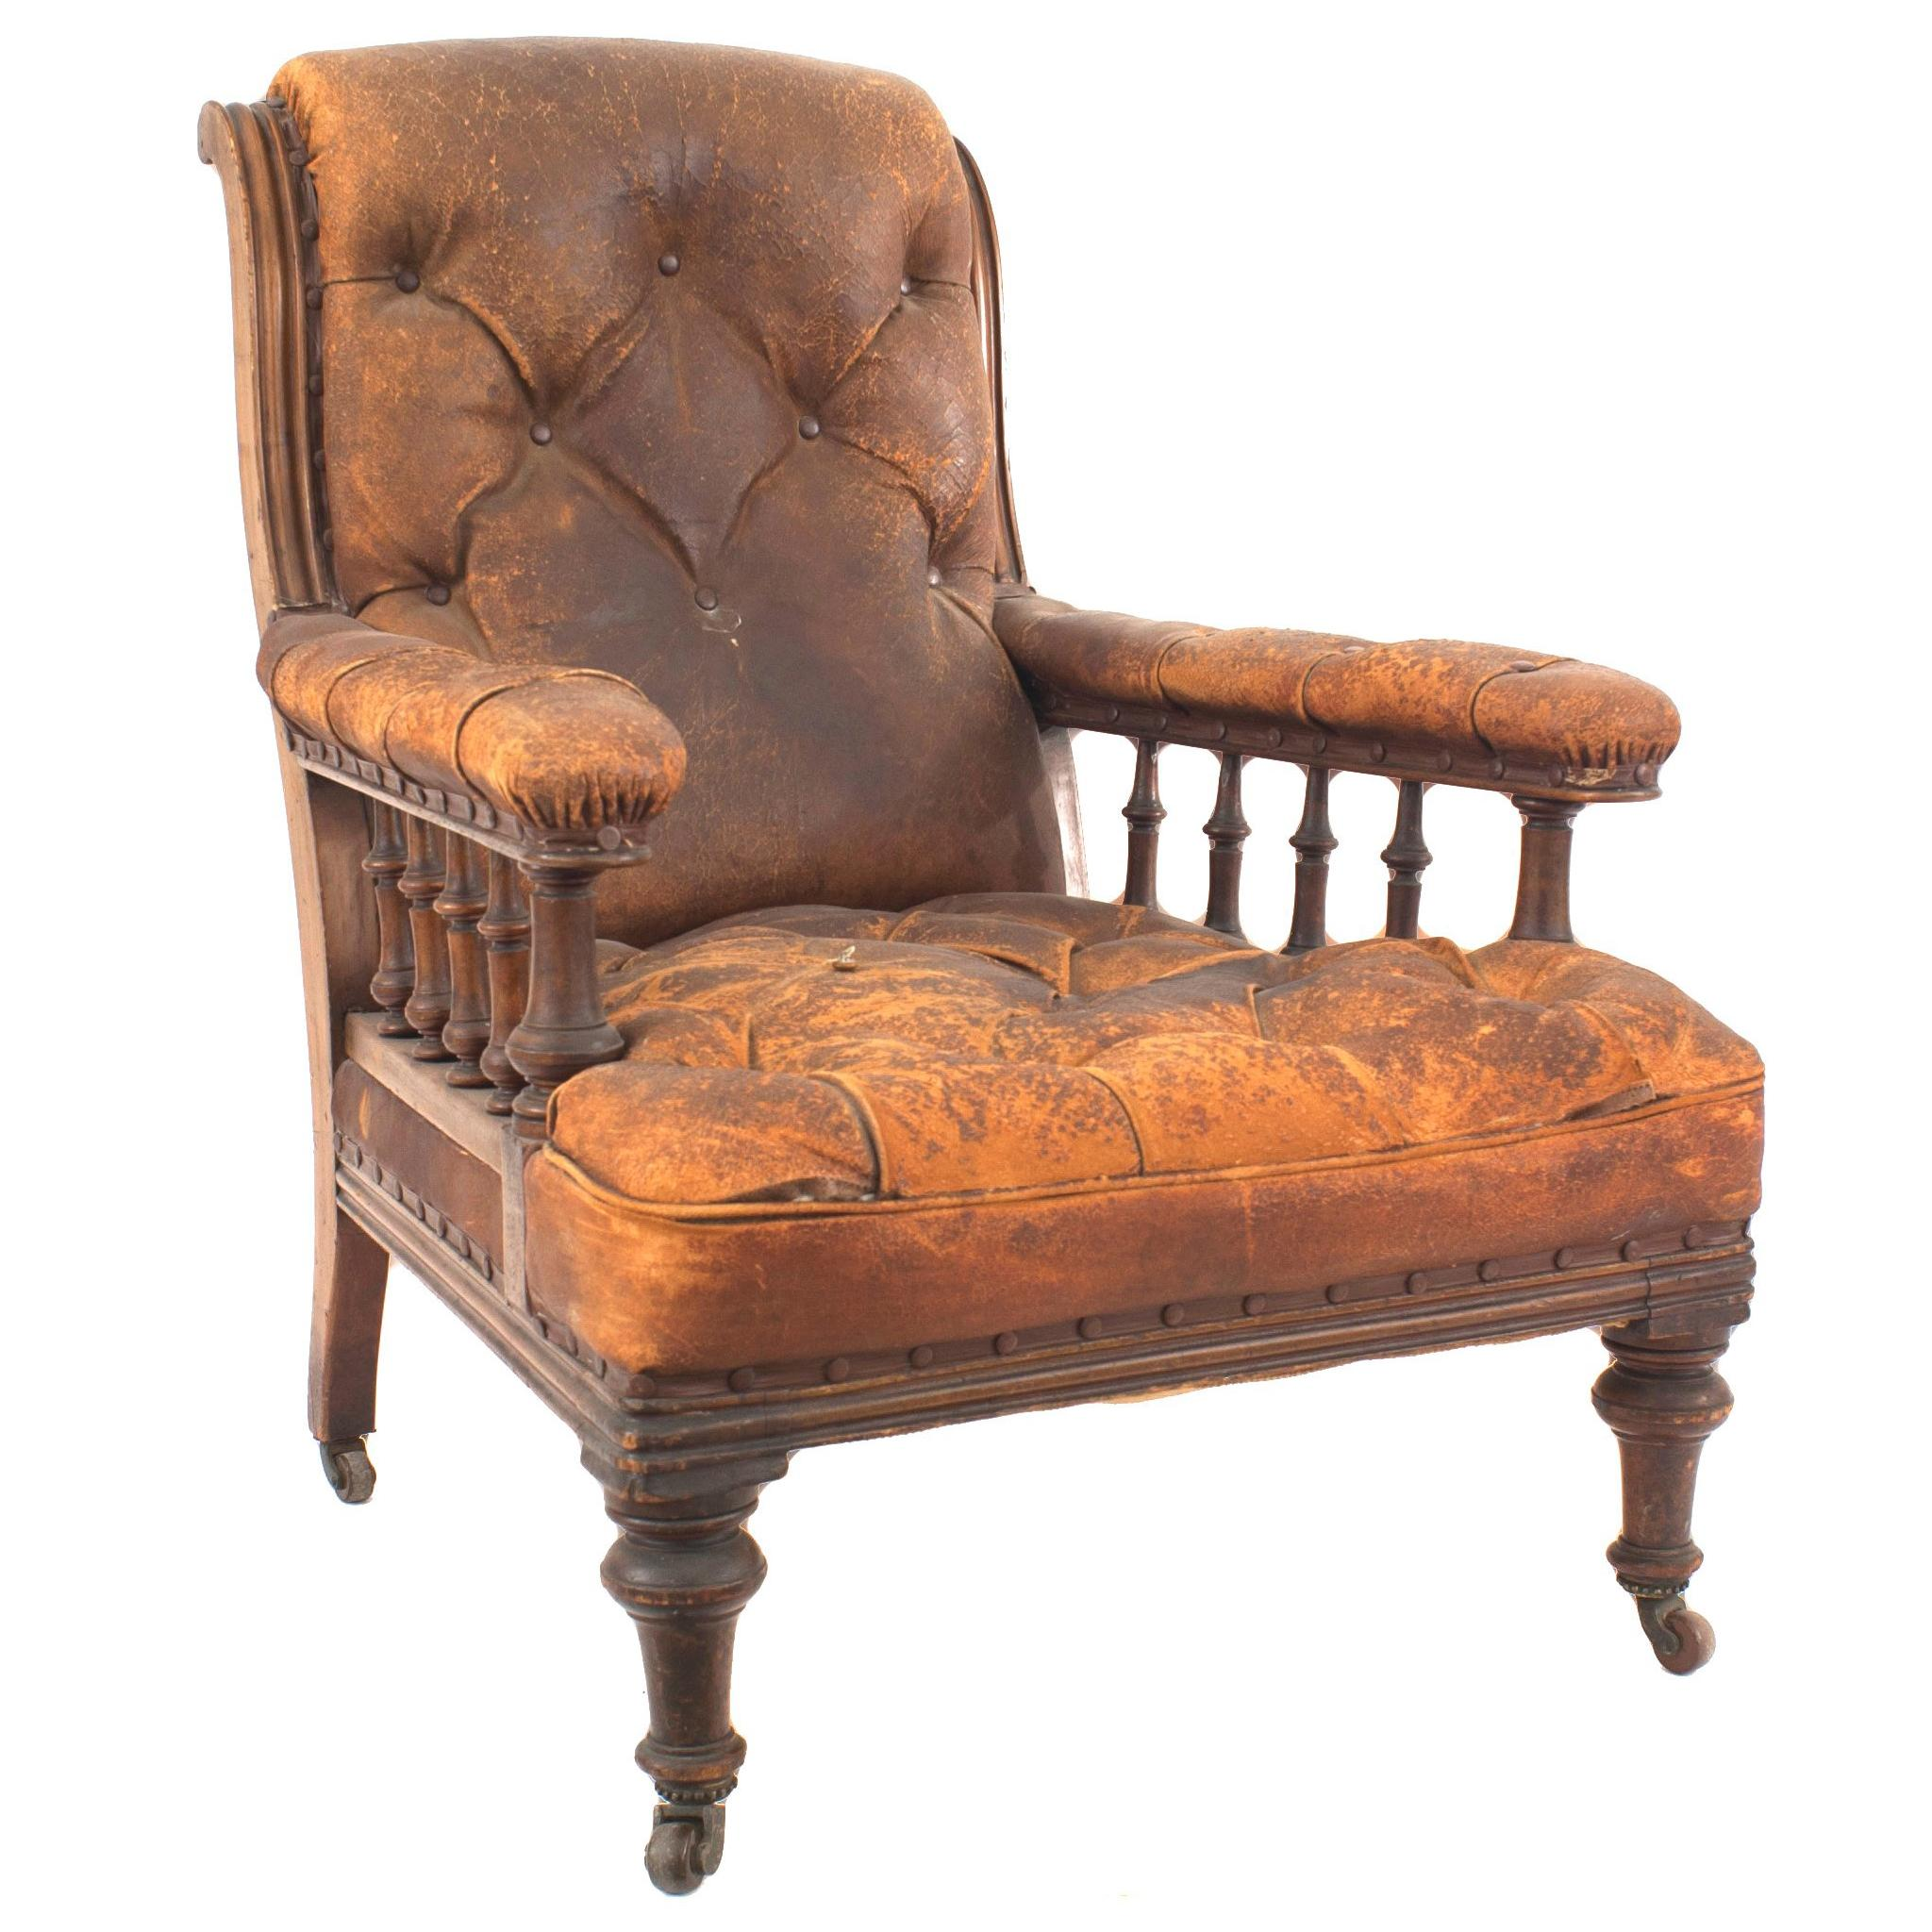 English Regency Mahogany Armchair